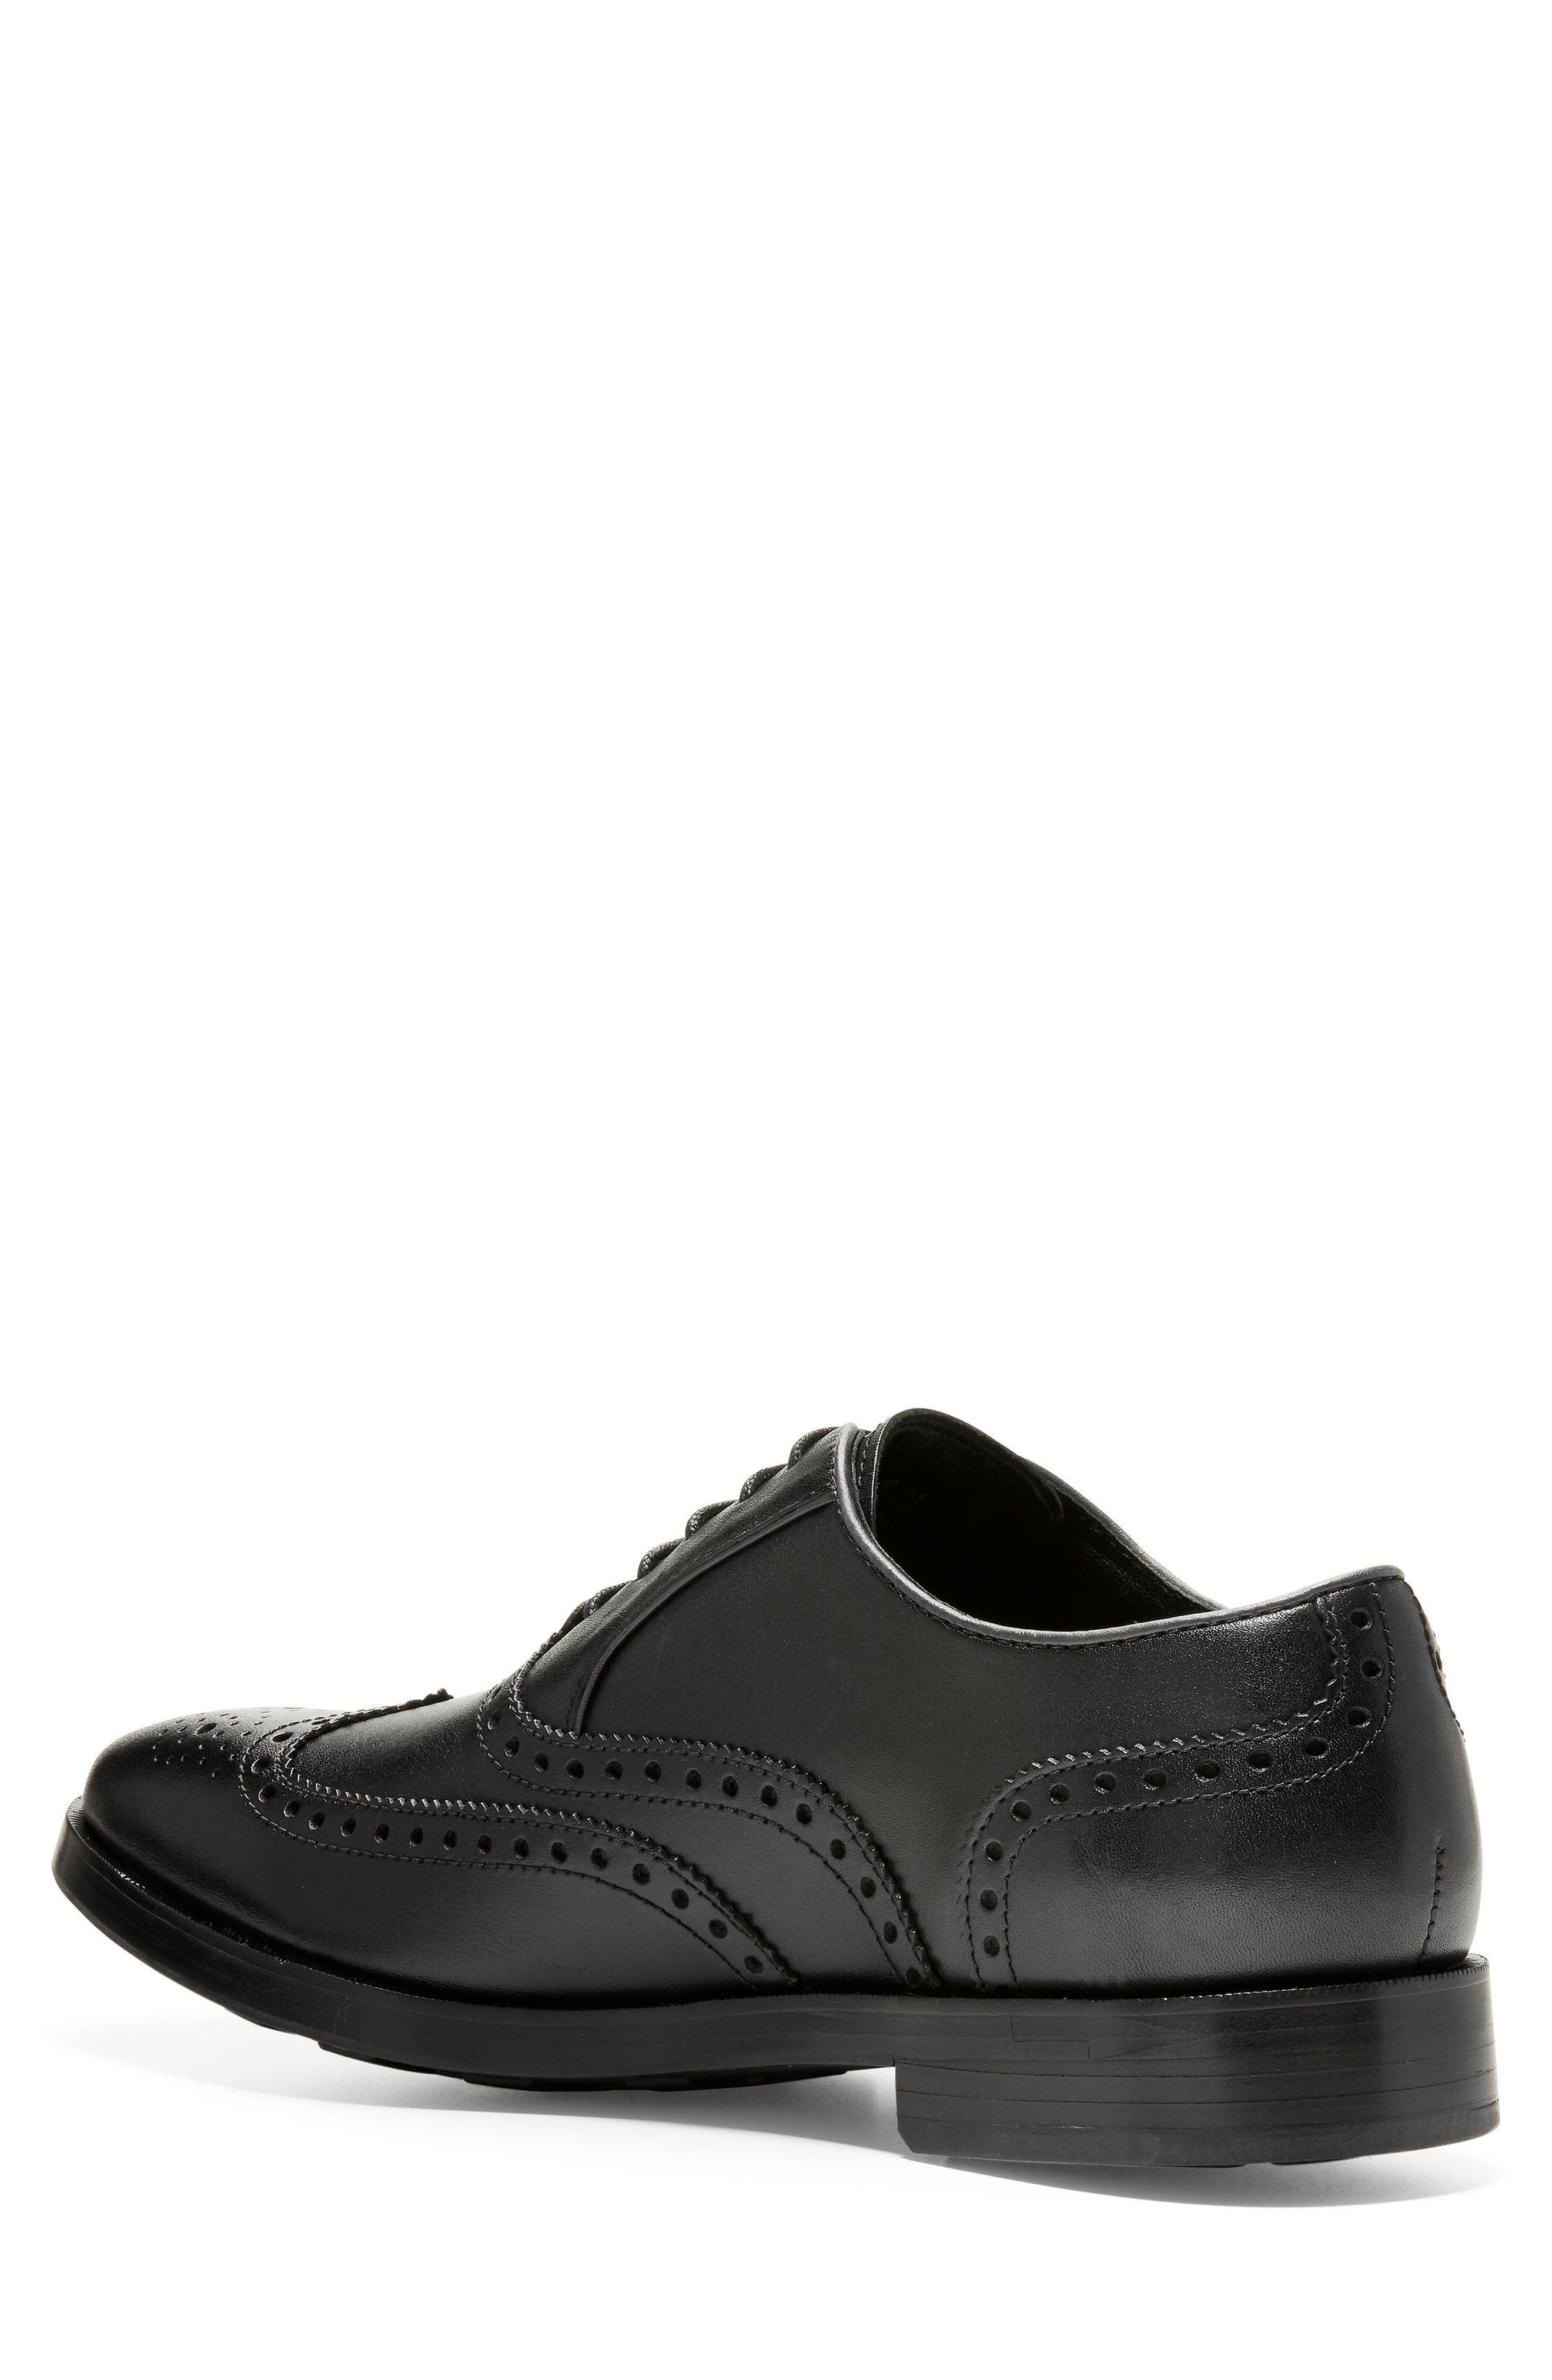 Hamilton Wingtip,                             Alternate thumbnail 2, color,                             BLACK LEATHER